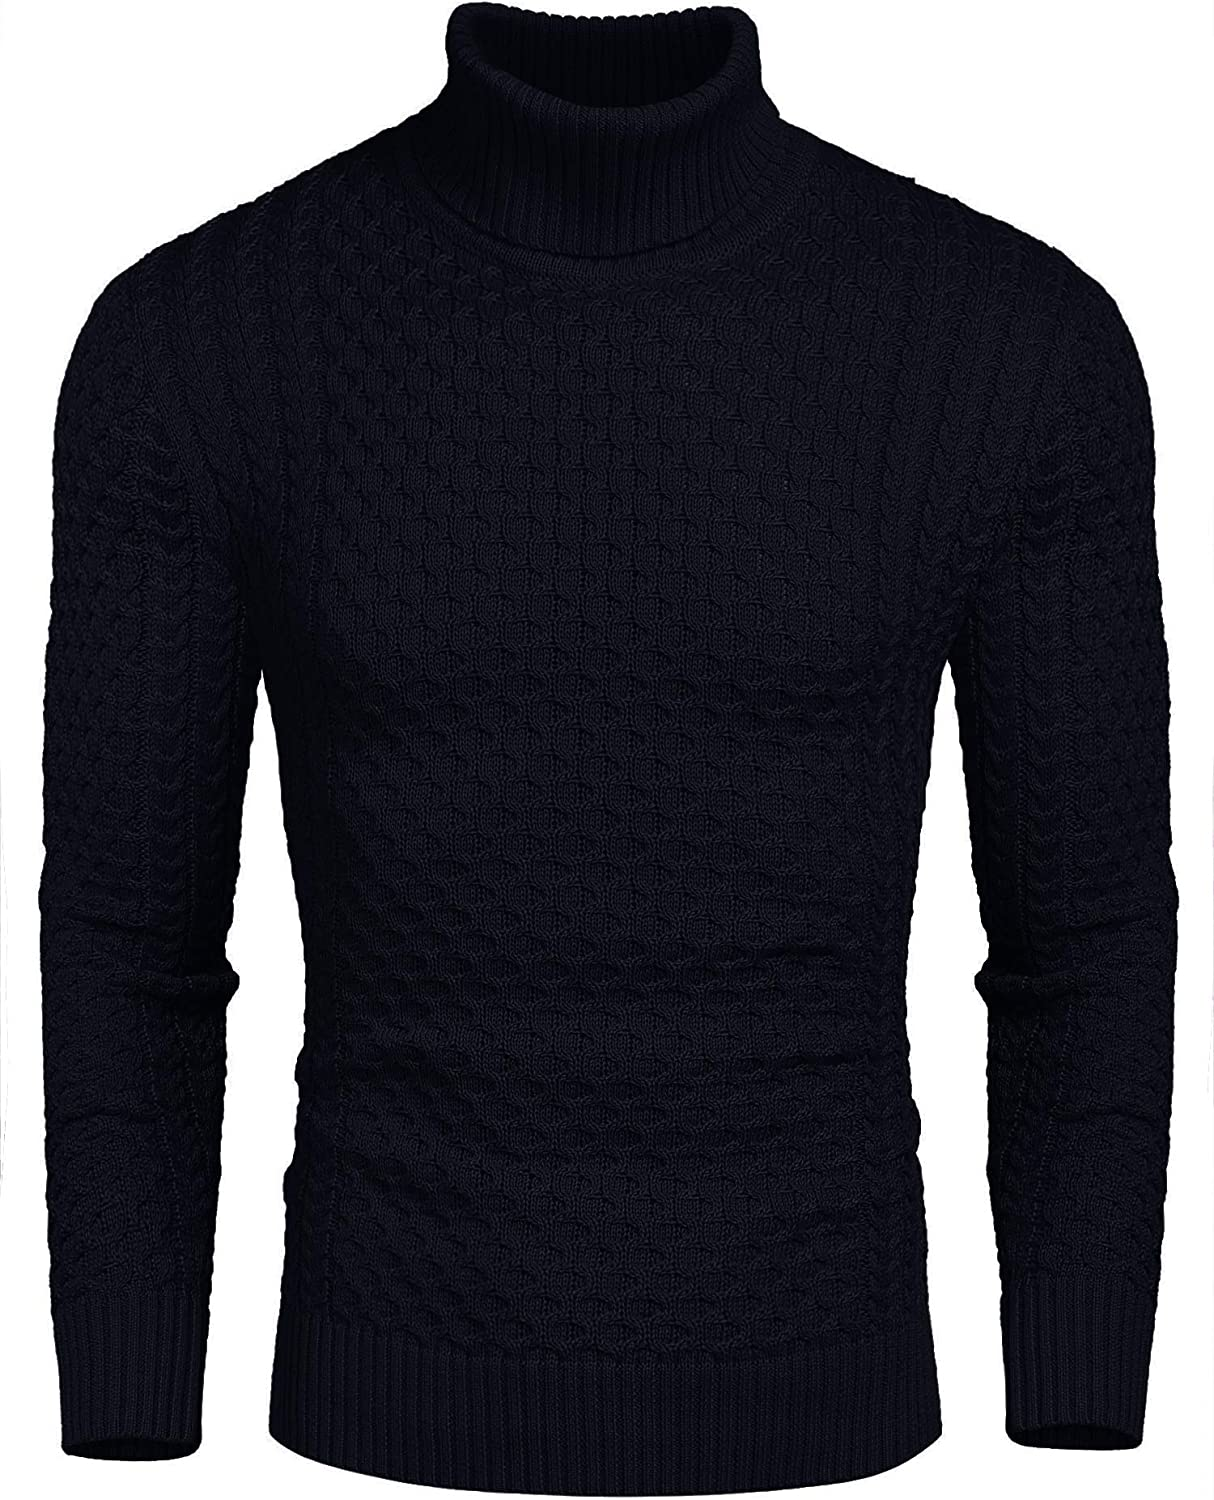 COOFANDY Mens Jumpers Turtleneck Slim Fit Twisted Knitted Ribbed Casual Pullover Jumpers